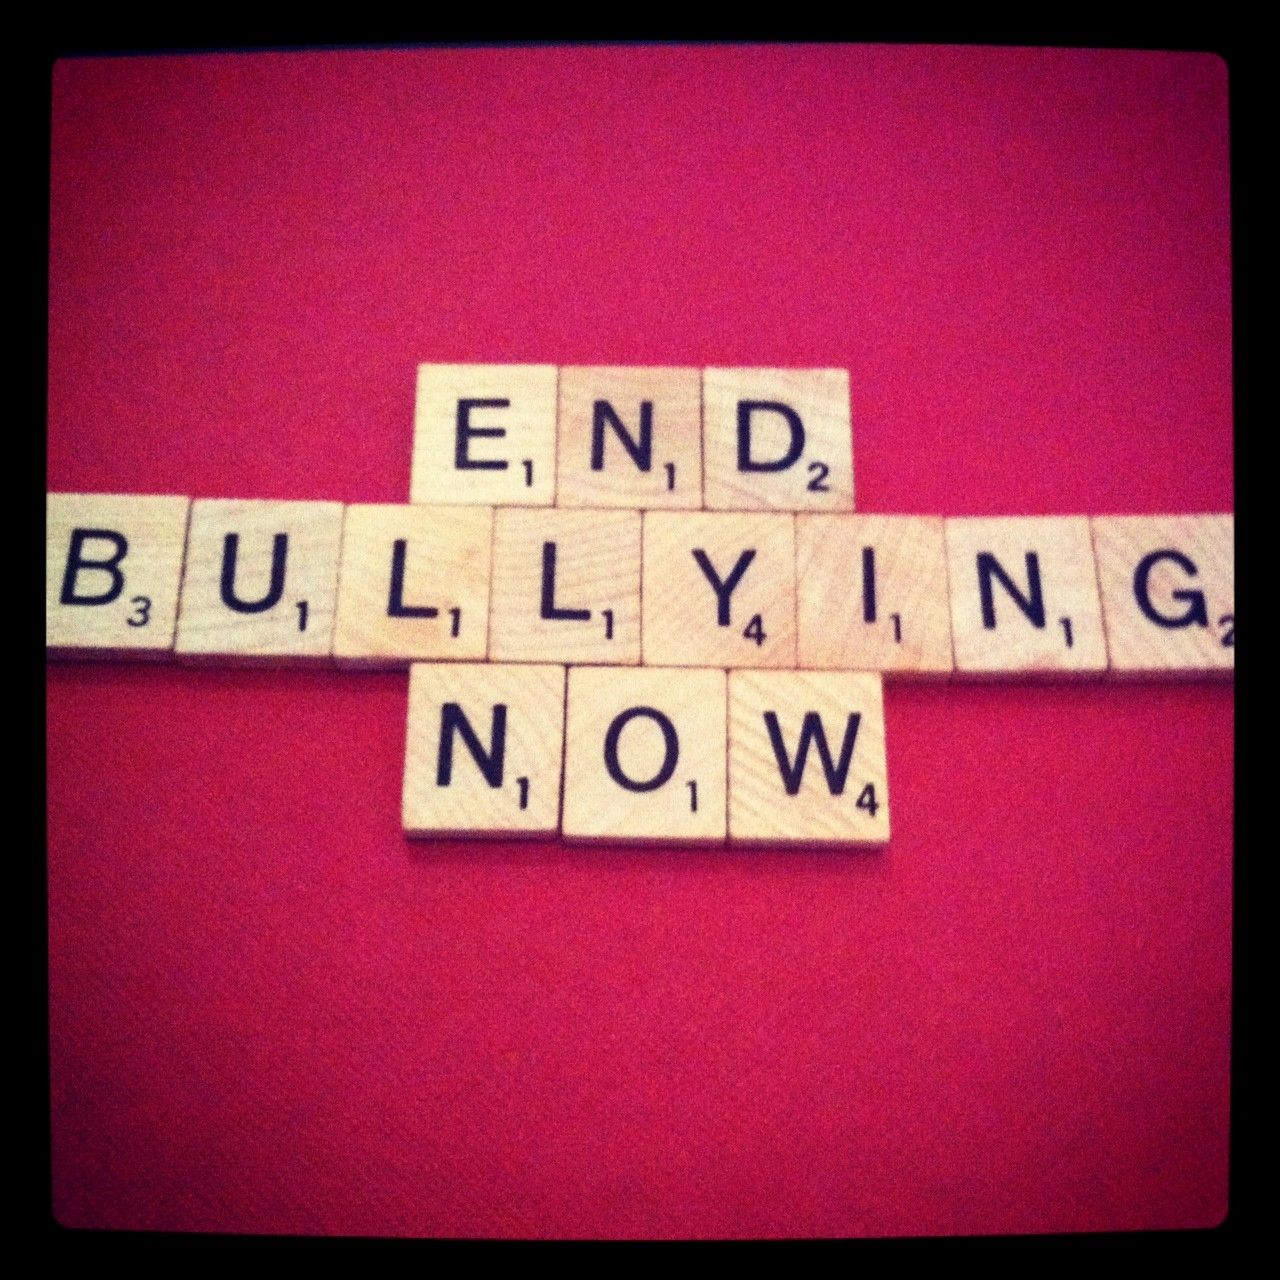 6 Tips to put an end to bullying